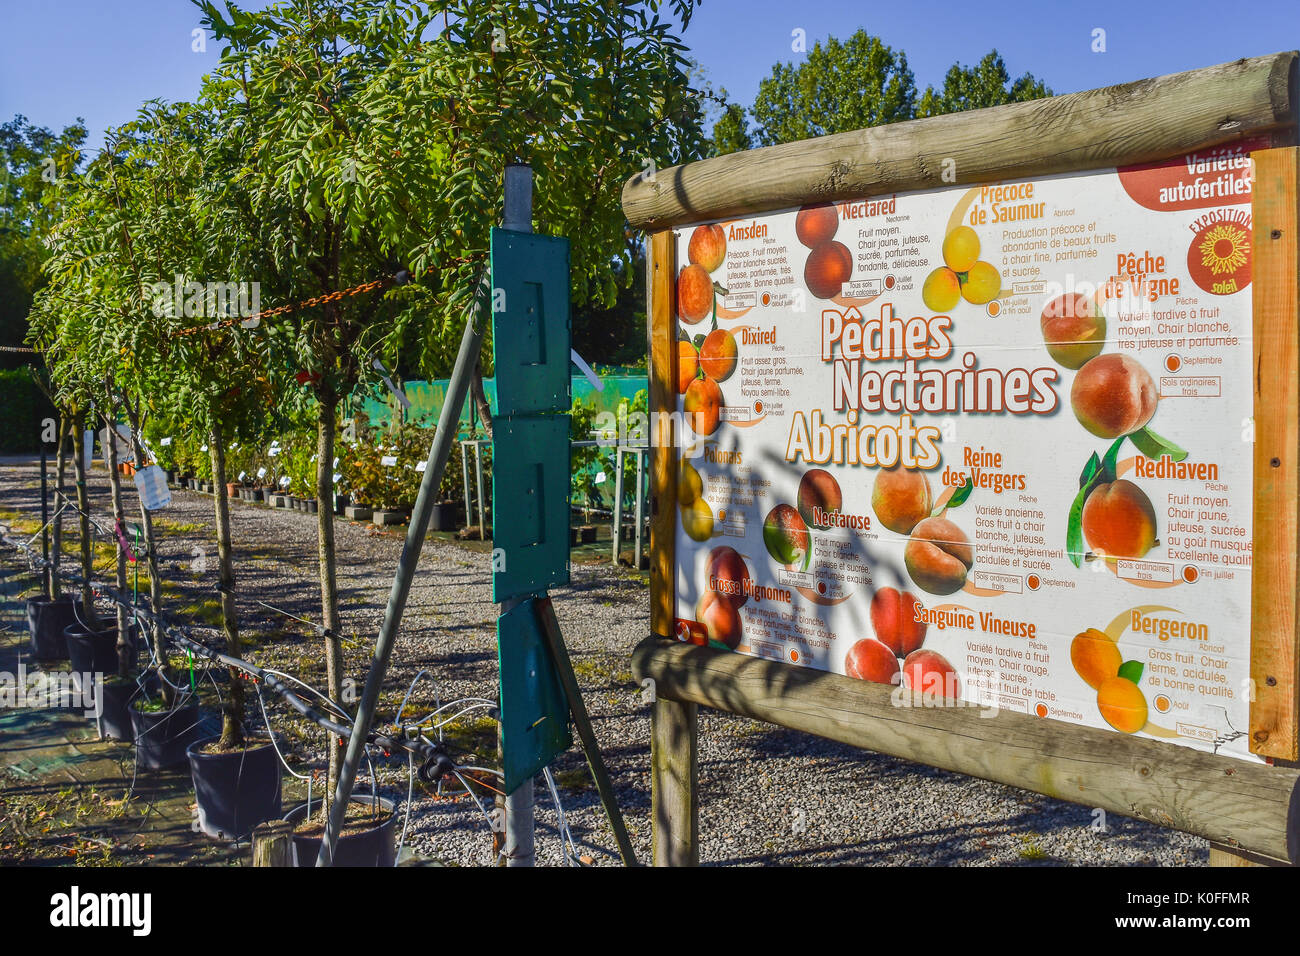 Plant nursery, France. - Stock Image